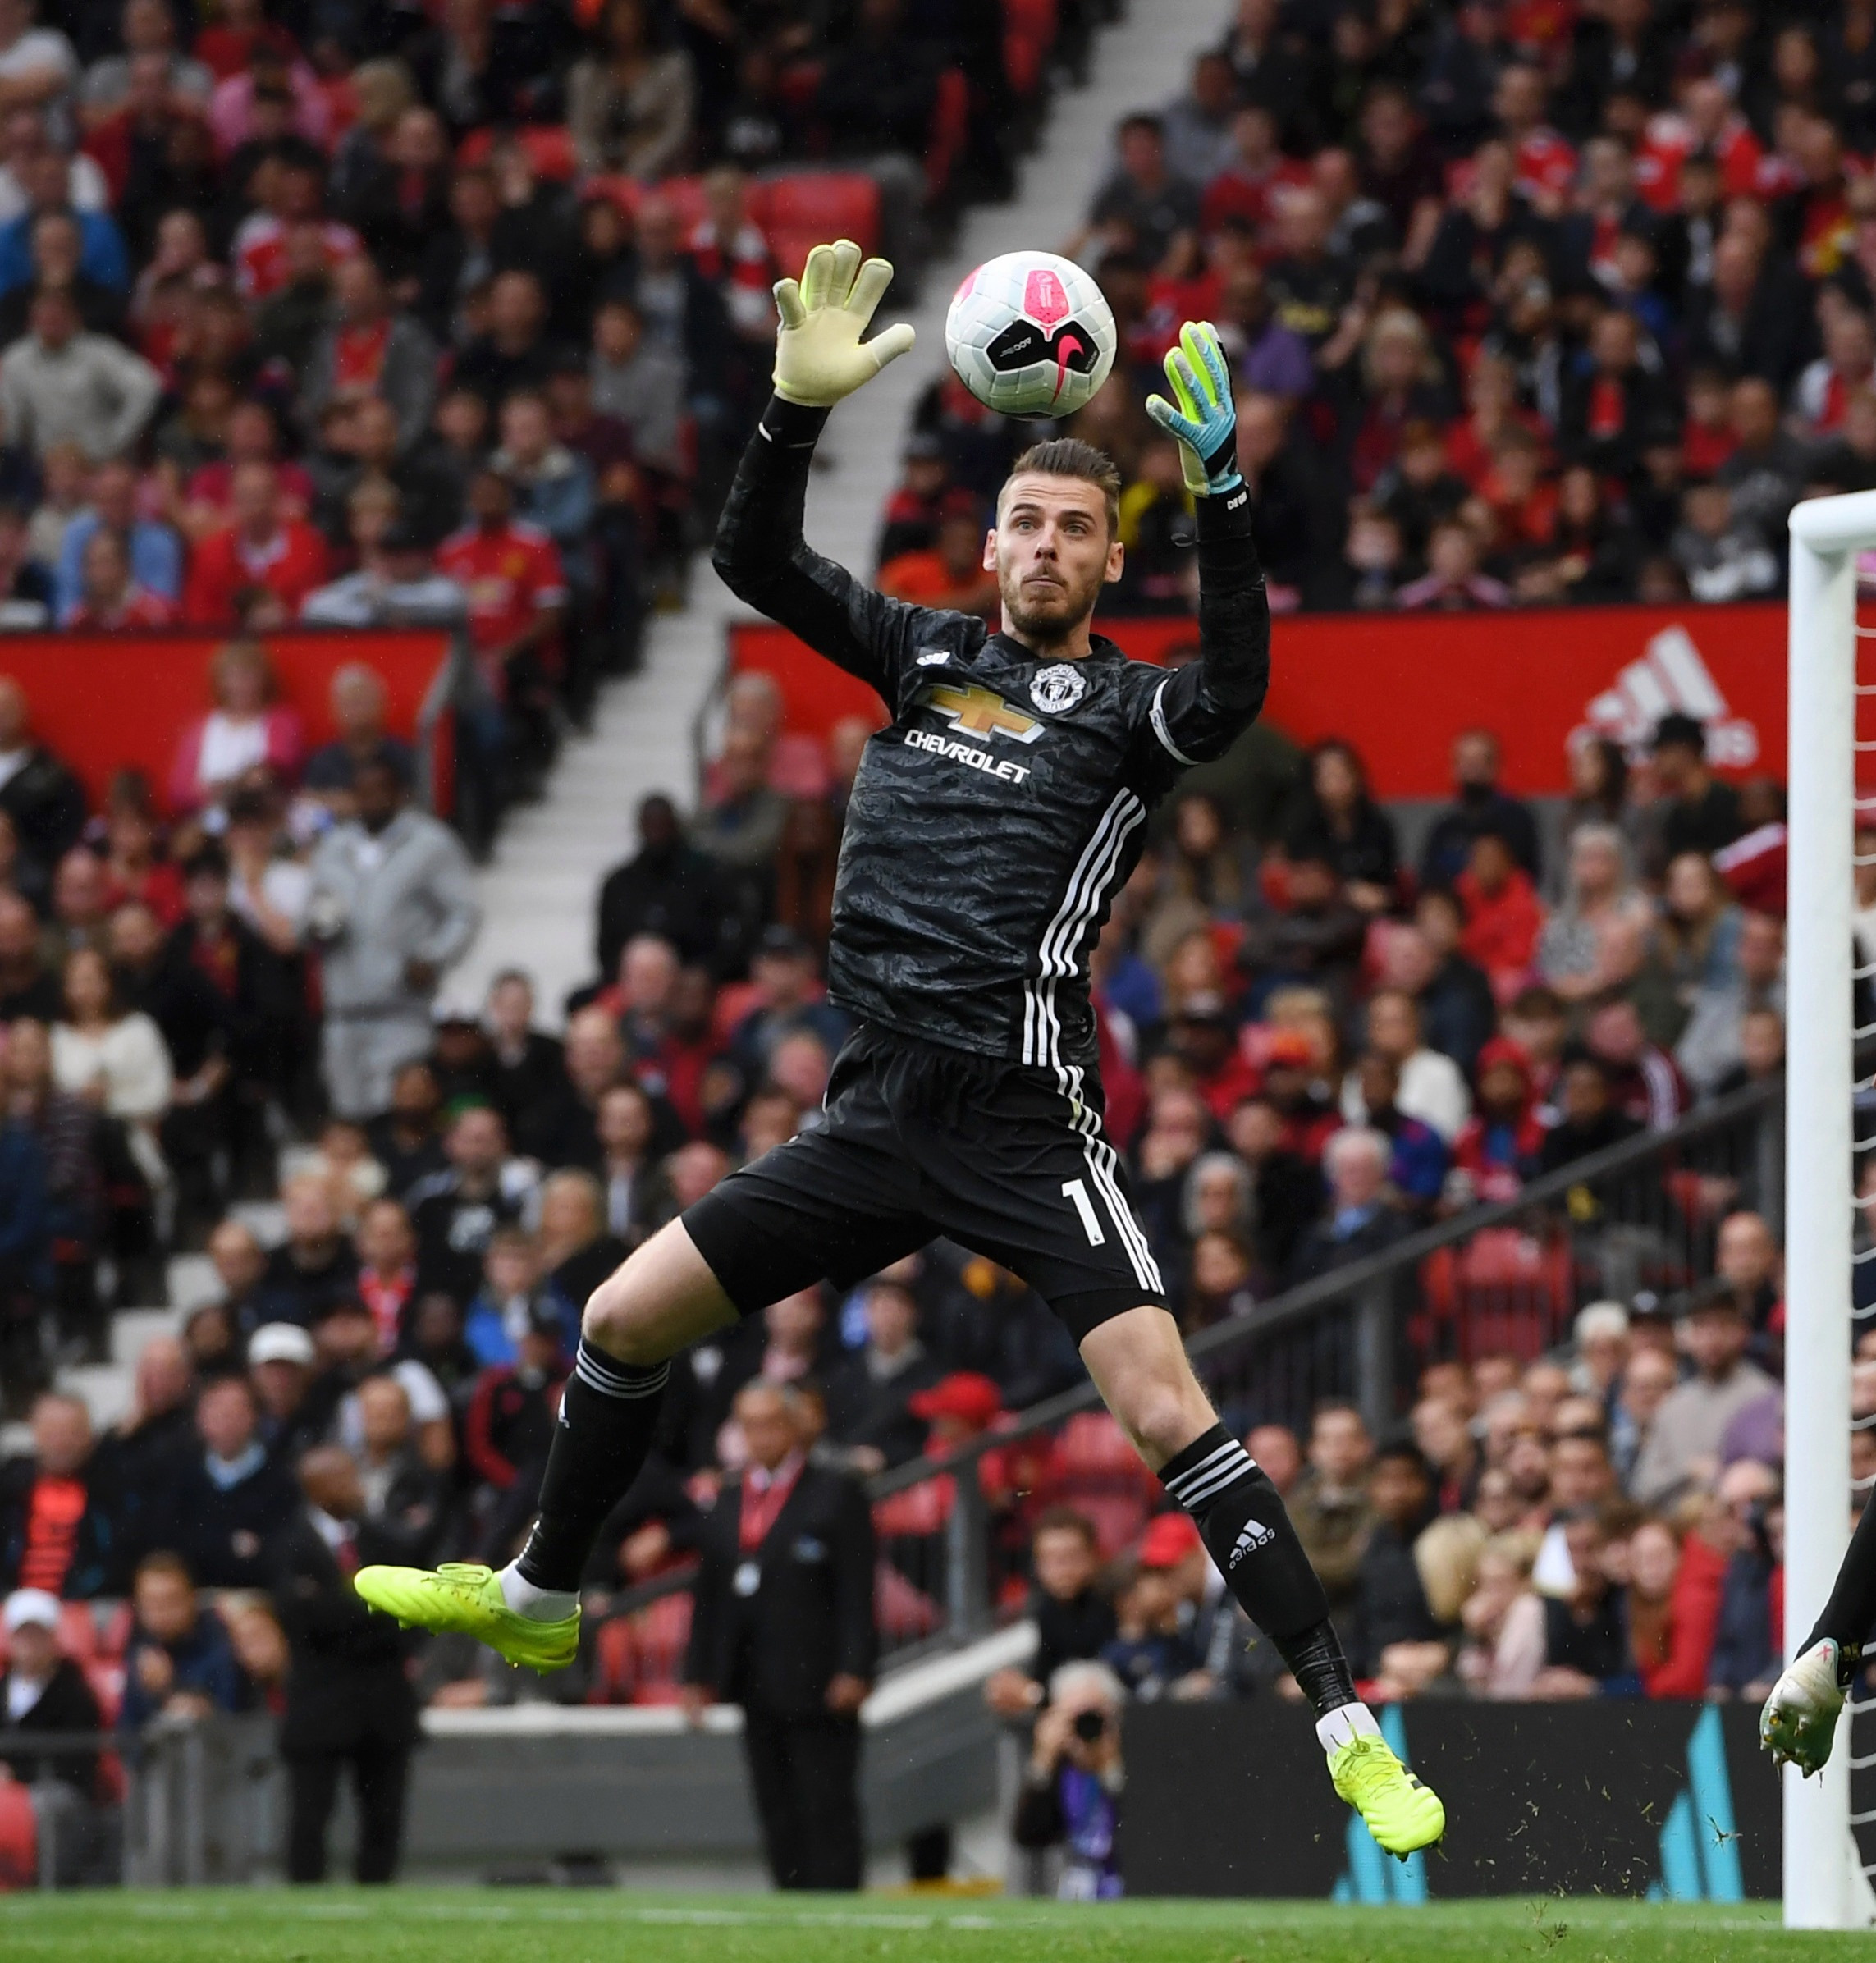 Make a save on your TV deal when the Premier League return this week